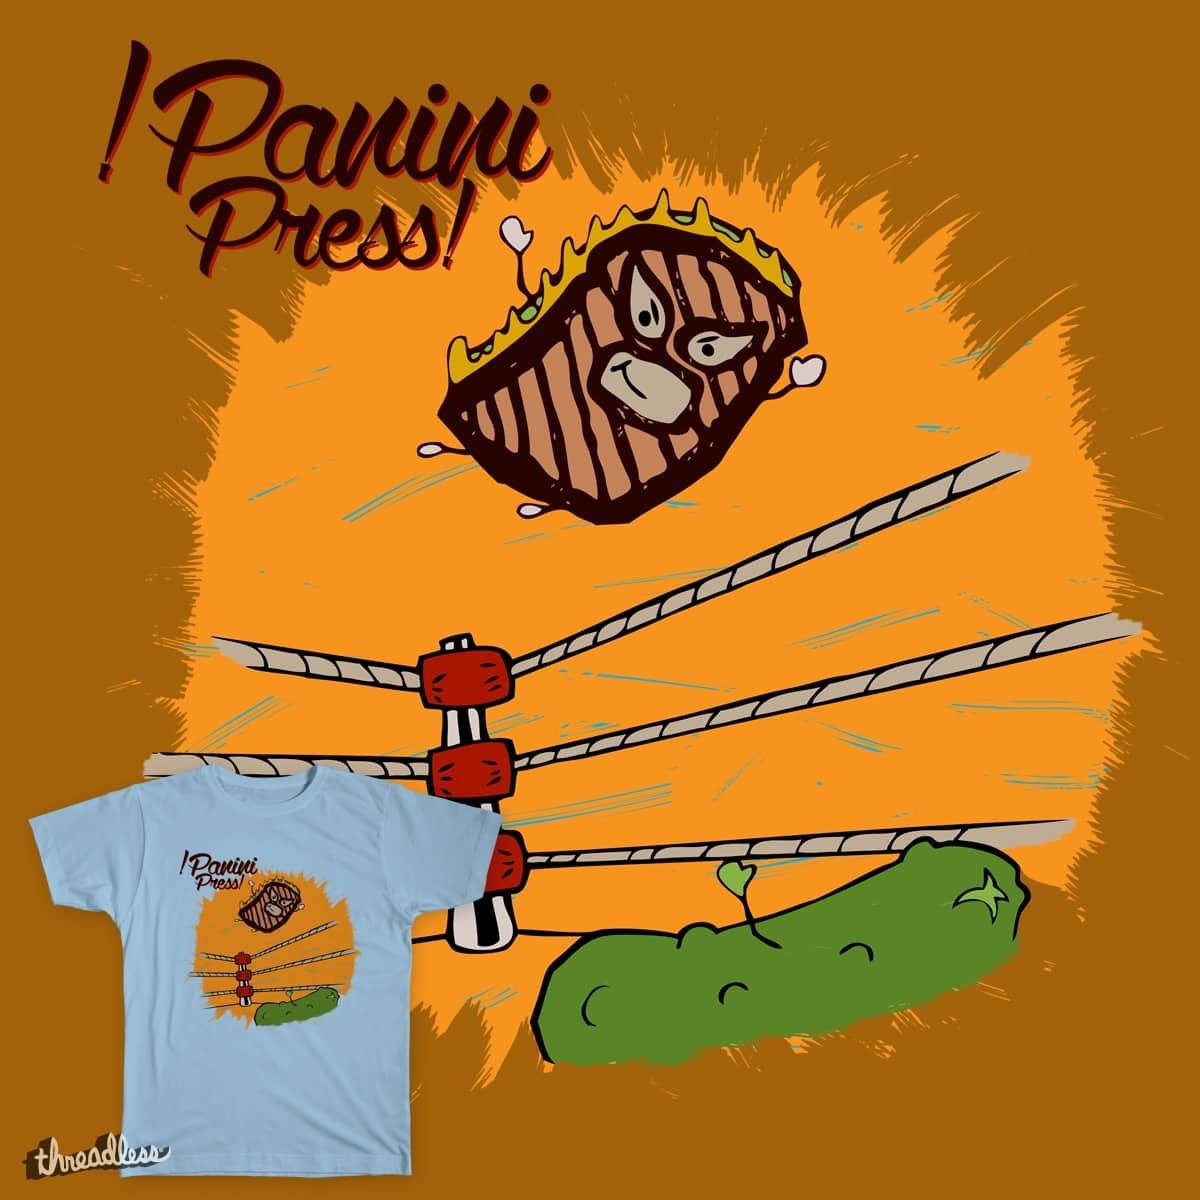 !PANINI PRESS! by leland.guinand88 on Threadless